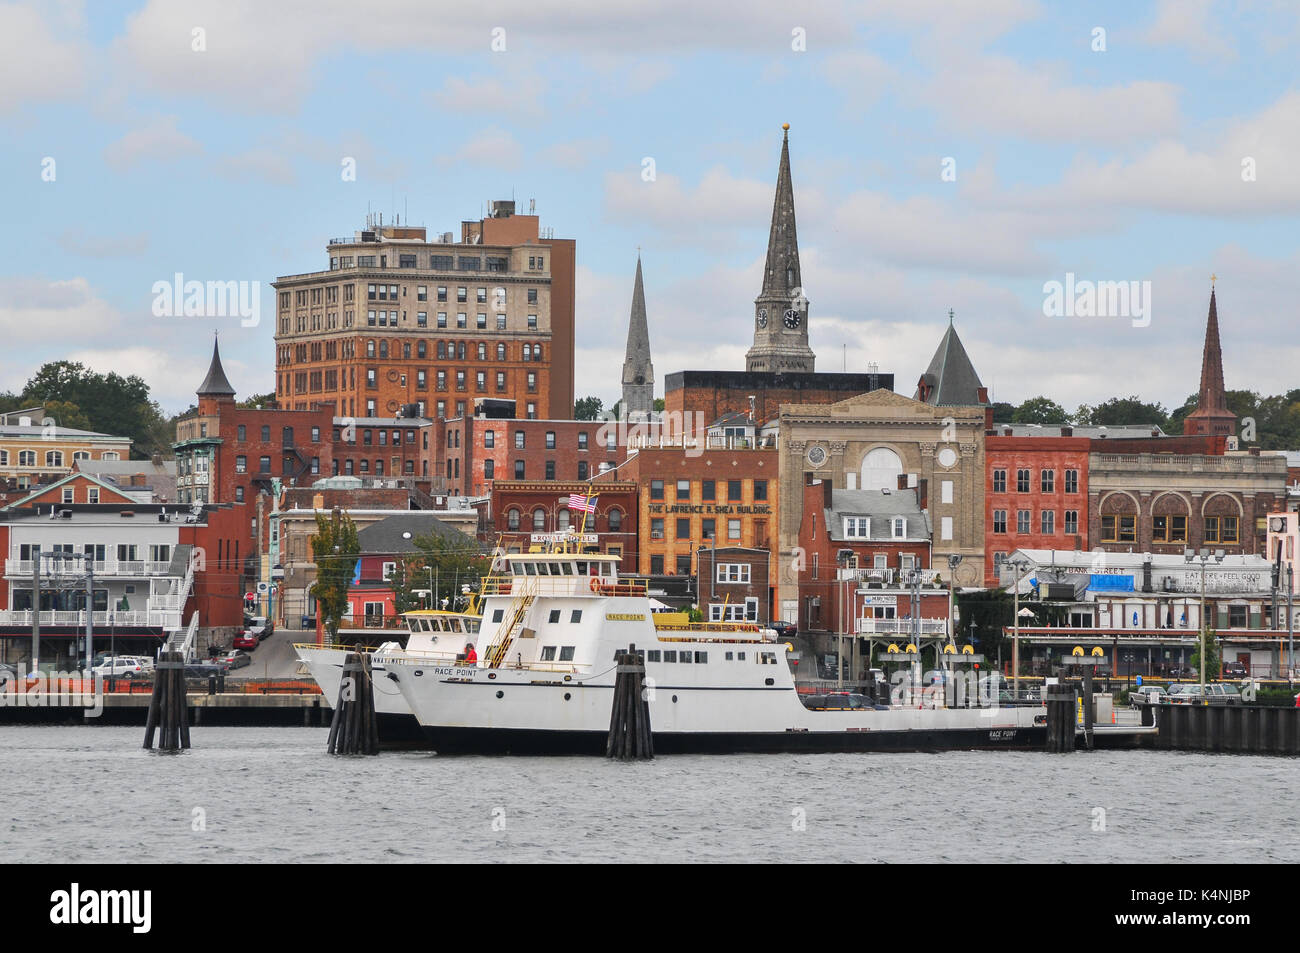 New London, Connecticut seen from Long Island Ferry - Stock Image